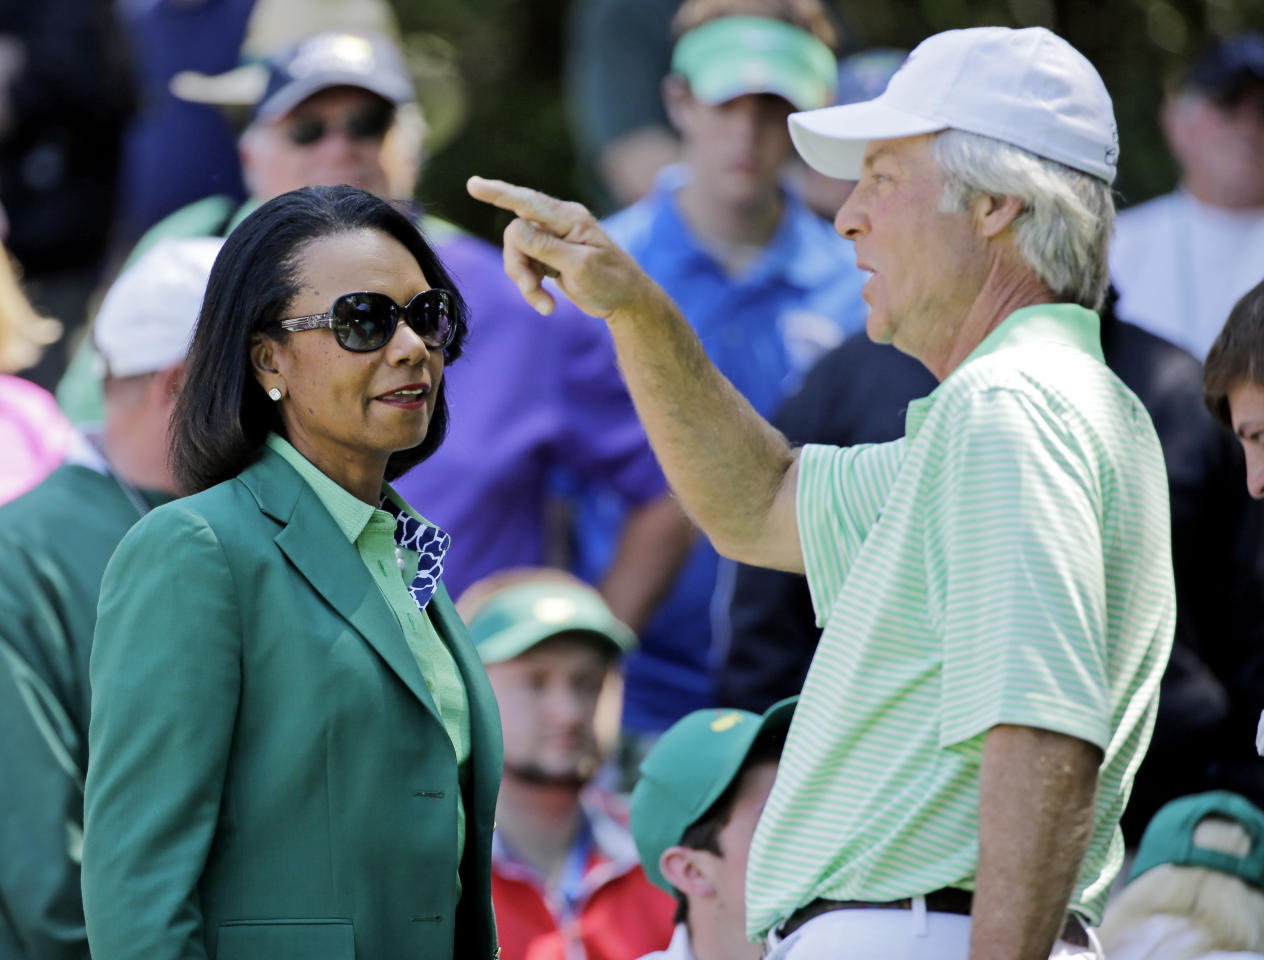 Former U.S. Secretary of State Condoleezza Rice speaks with Ben Crenshaw during the par three competition at the Masters golf tournament Wednesday, April 9, 2014, in Augusta, Ga. (AP Photo/David J. Phillip)